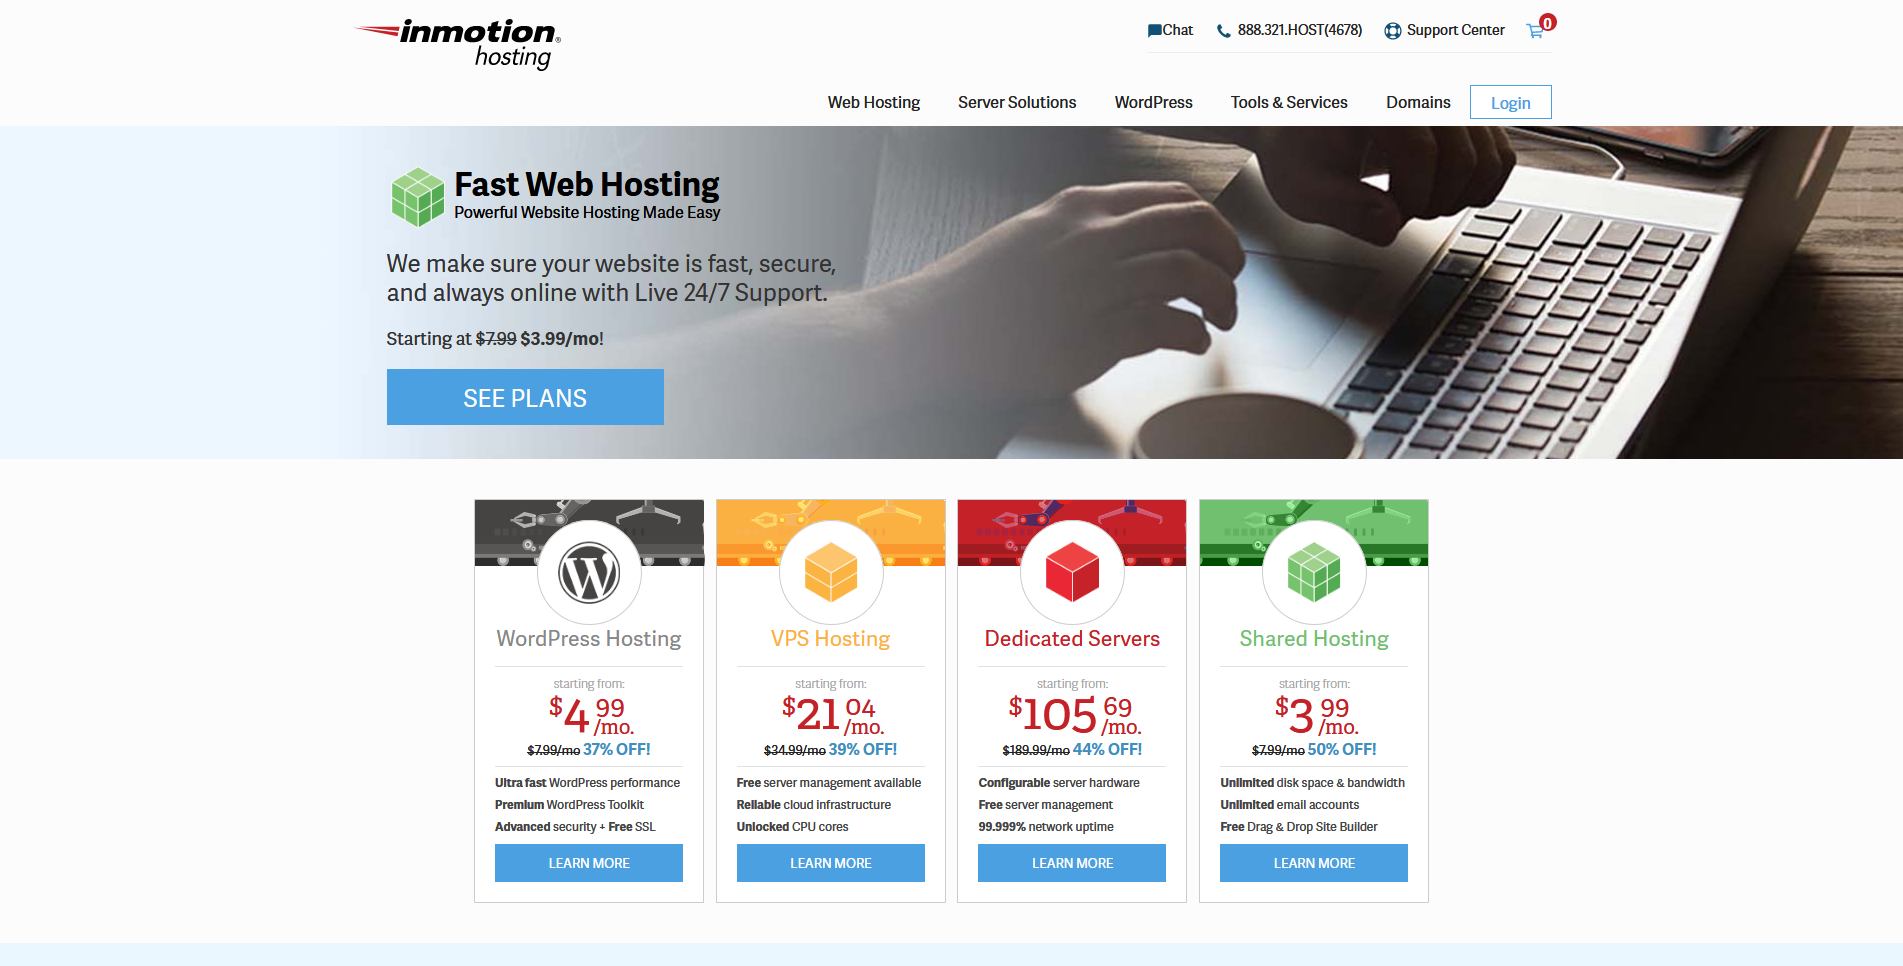 6 Inmotion Hosting